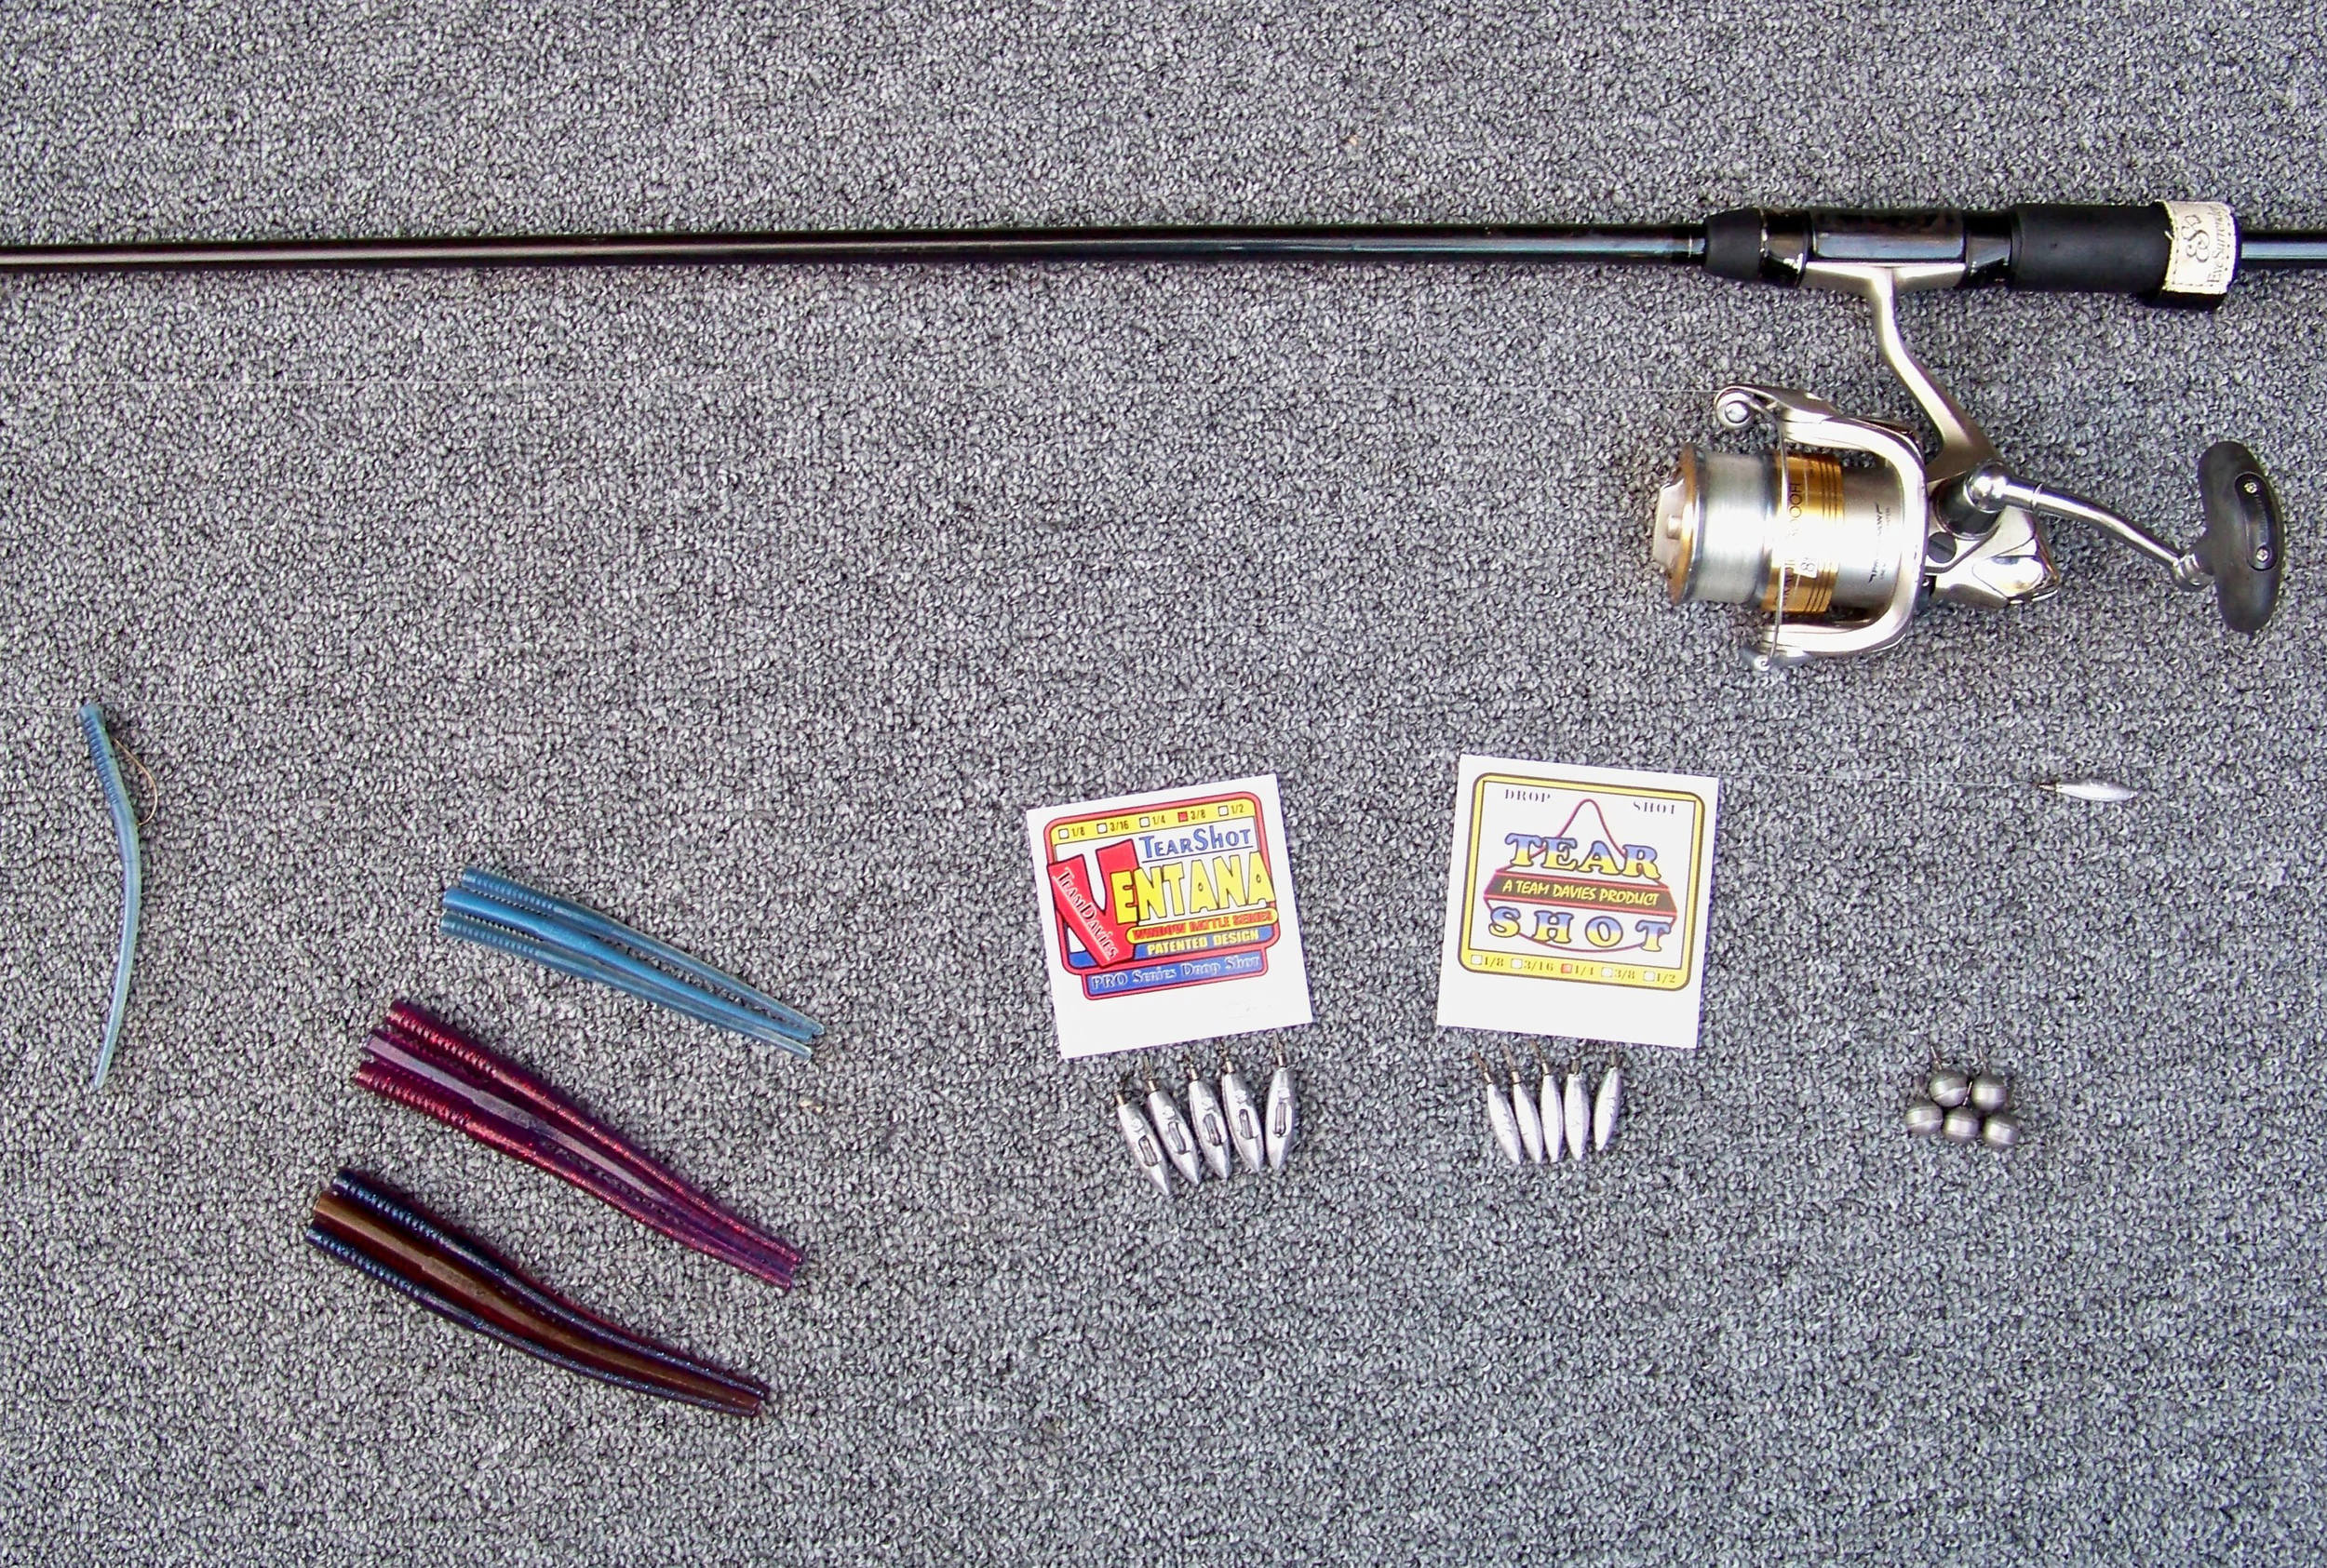 "With clouds and strong wind present, the fish favored Trigger X 5.5"" Probe Worm Cheap Shot color (middle position) & Dirty Grape color (bottom position). When sunshine, blue skies and a calm breeze  appeared, the 4"" Probe Worm Pro Blue color (top position) scored.  The 3/8 oz. Ventana rattling drop shot weight (left position), 1/4 oz. Tear Shot Slim Shot (center position), the 3/8 oz. Tear Shot Bulk Shot tungsten weight (right position). The length of the drop is shown from the individual Slim Shot weight below the reel and the single Pro Blue worm far left, The 8 lb. fluorocarbon line is not visible in the photo."